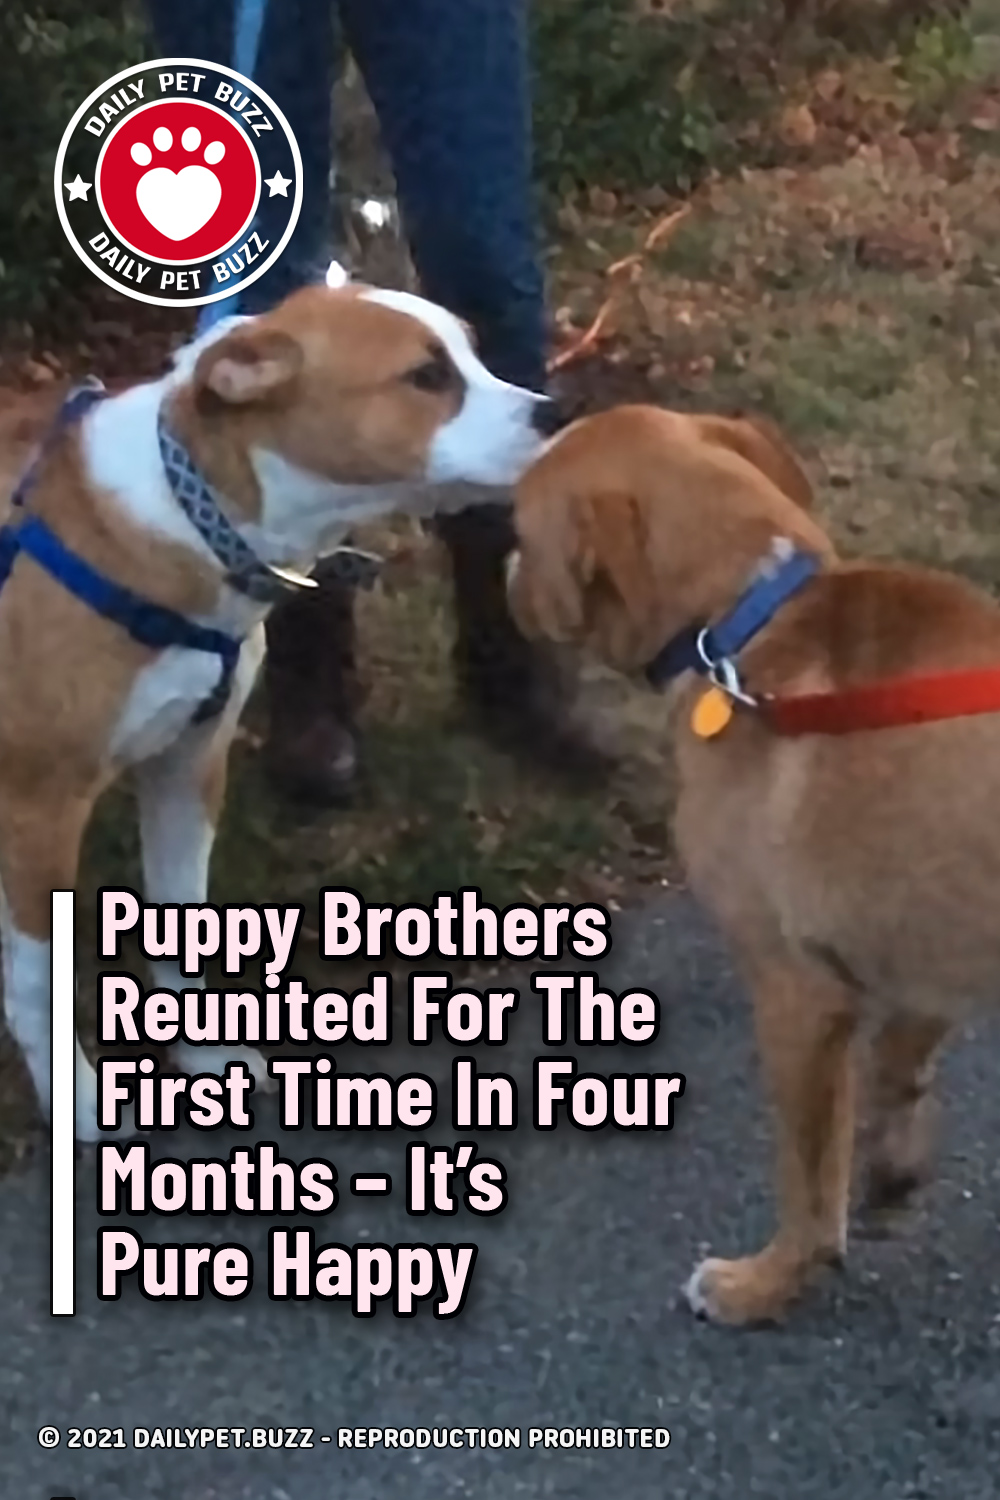 Puppy Brothers Reunited For The First Time In Four Months – It\'s Pure Happy